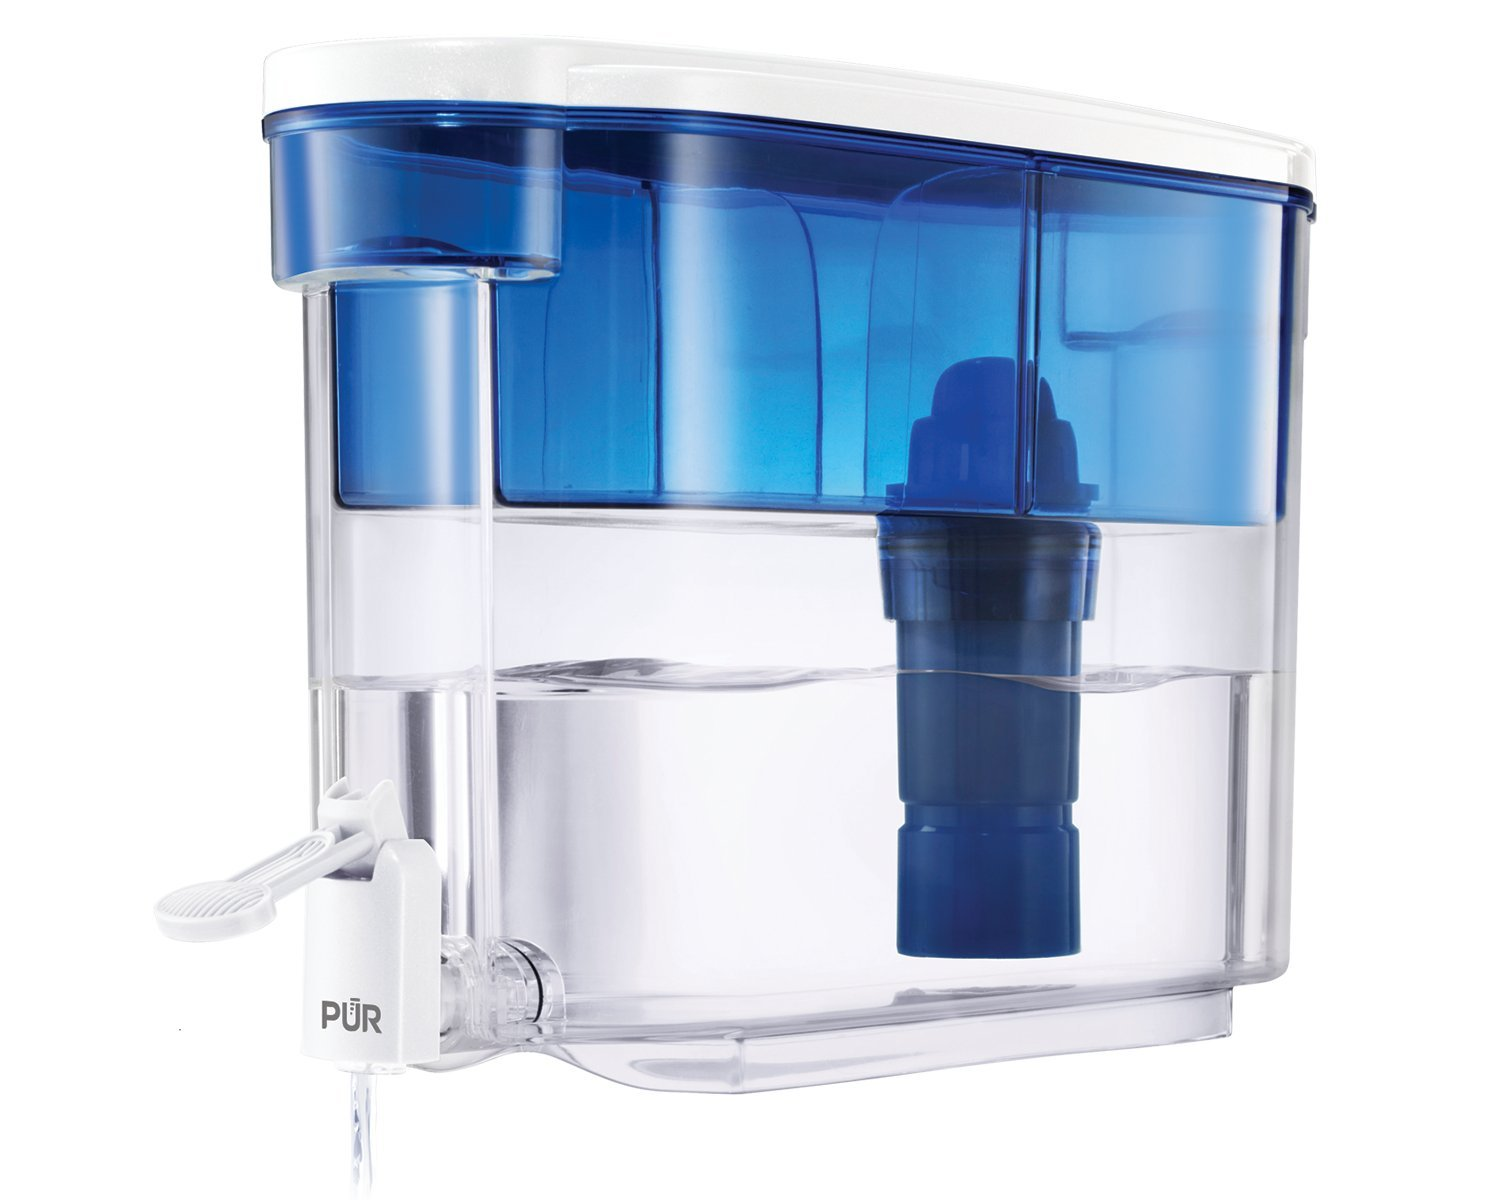 Amazon.com: PUR 18 Cup Dispenser w/1 Filter: Kitchen & Dining